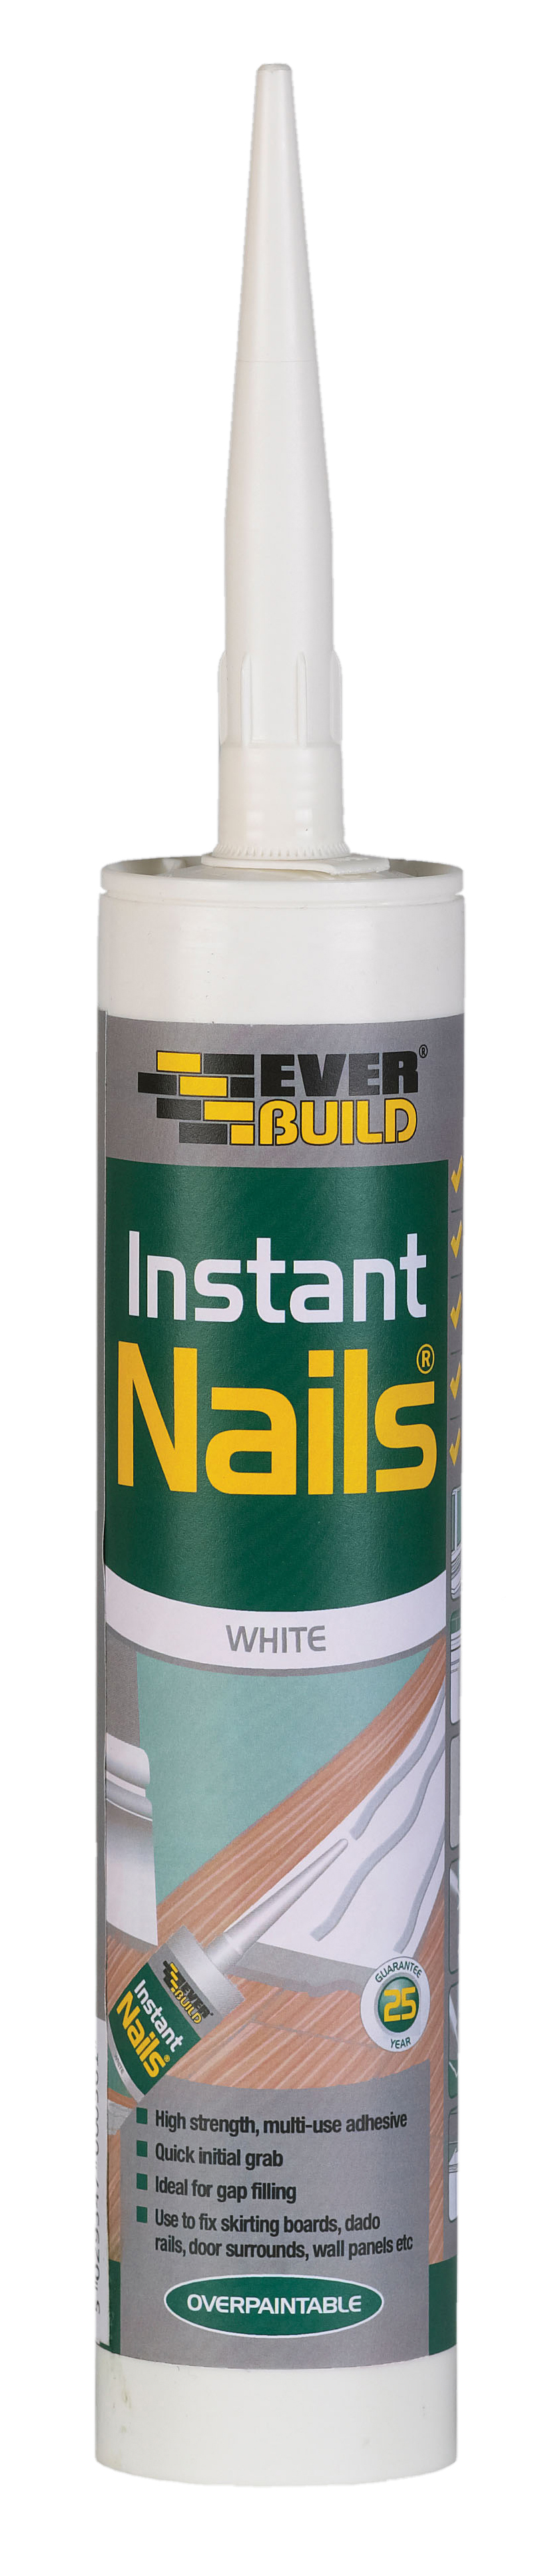 310ml Instant Nails Solvent Free Panel Adhesive